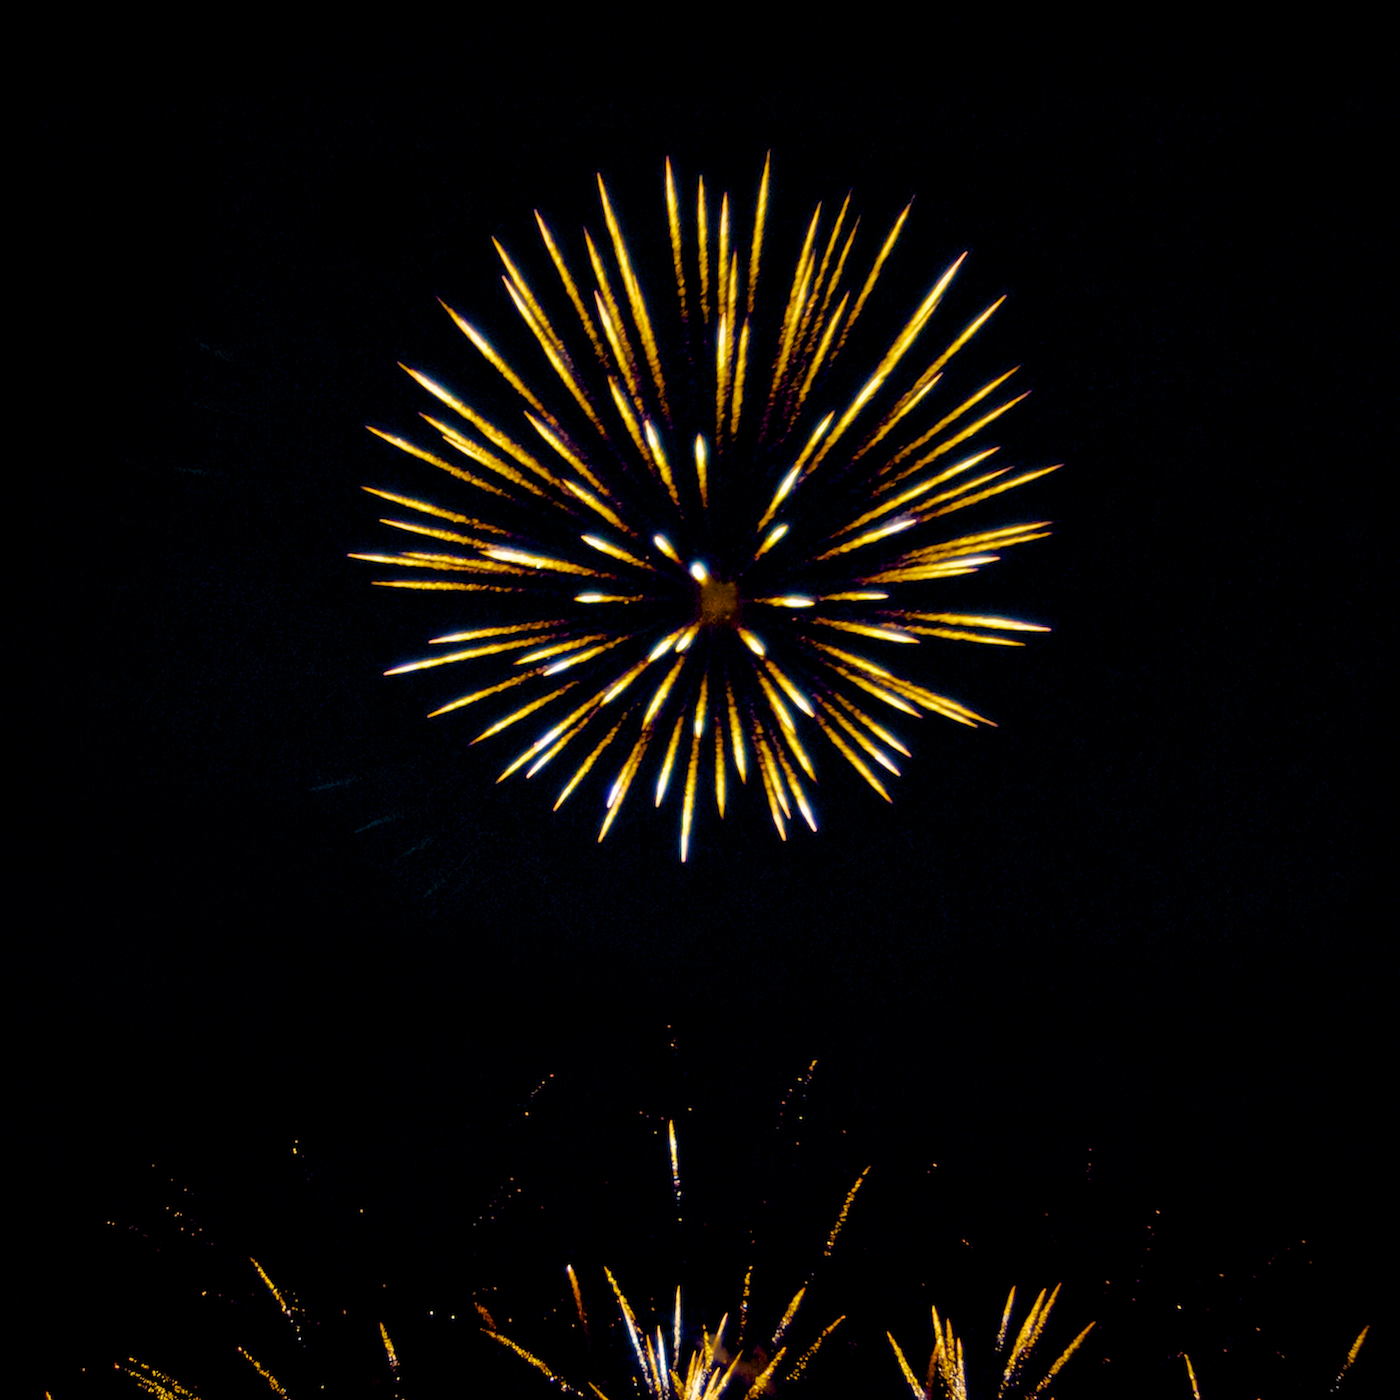 Fireworks at Keswick Park in Chamblee, Georgia, taken on the 4th of July2015. Copyright © 2015. All rights reserved.To see more pictures, please visit my photography website at  www.dominiquejames.com . Thanks!